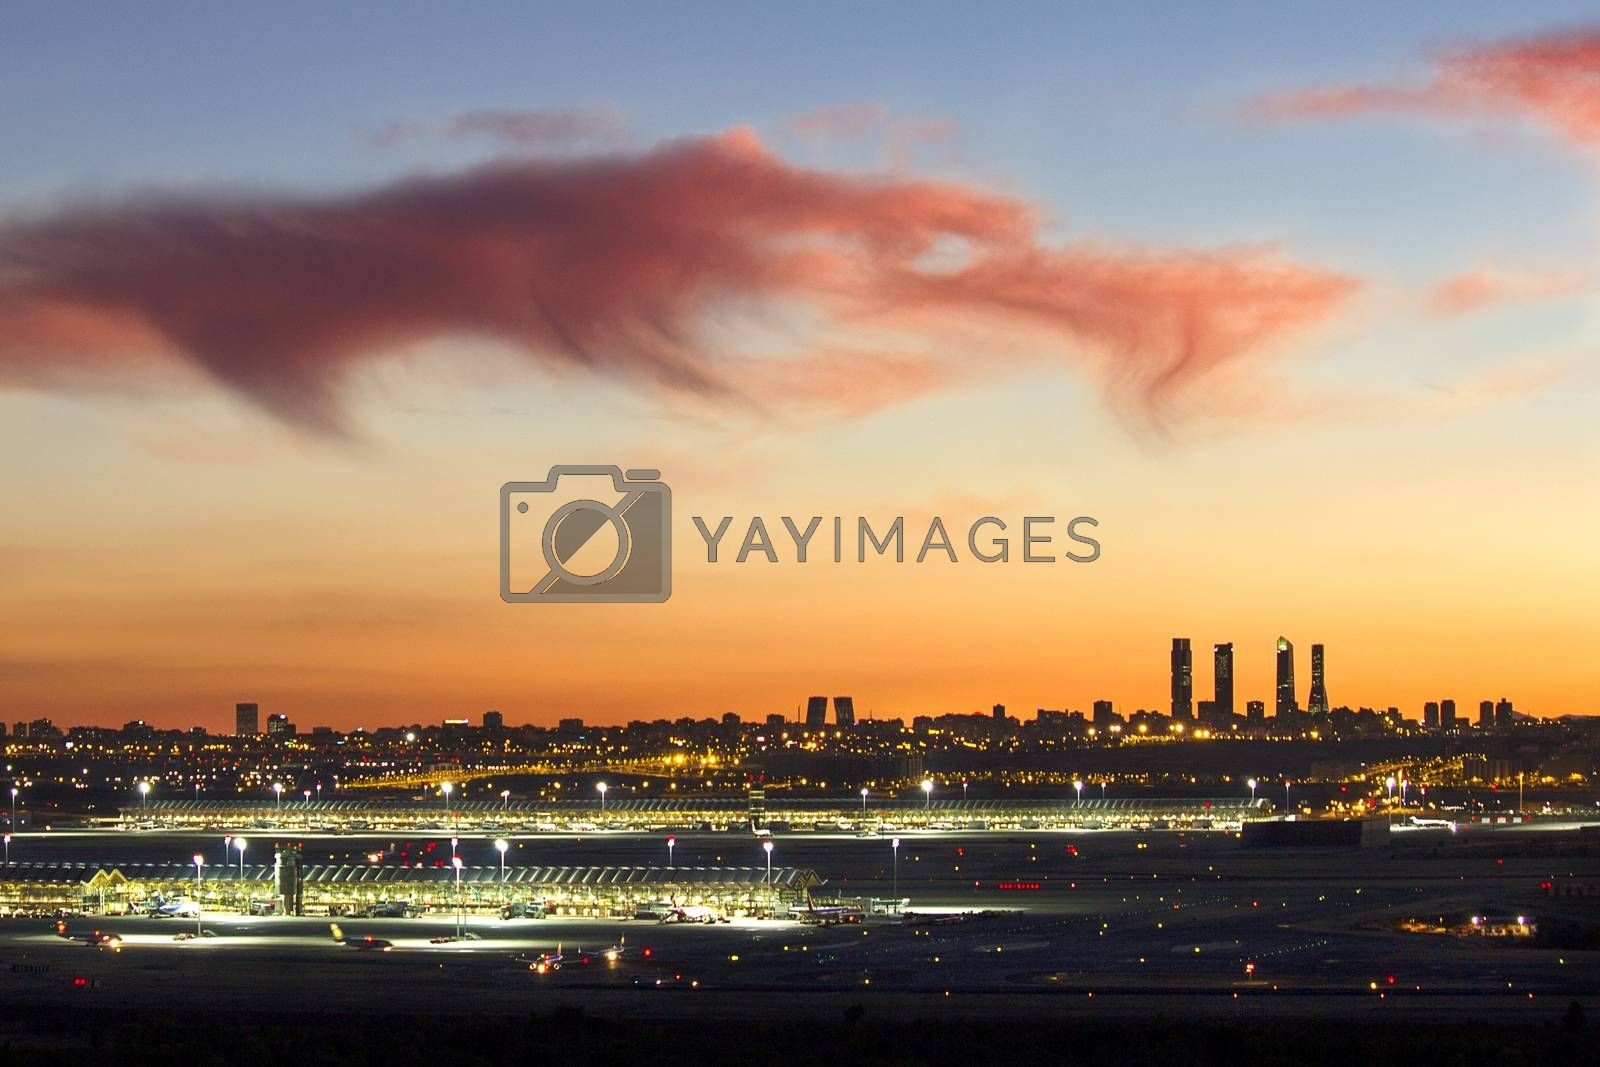 This is a view of Madrid from the Airport at sunset, with the lights of the city and the beautiful orange and blue cloudy sky.